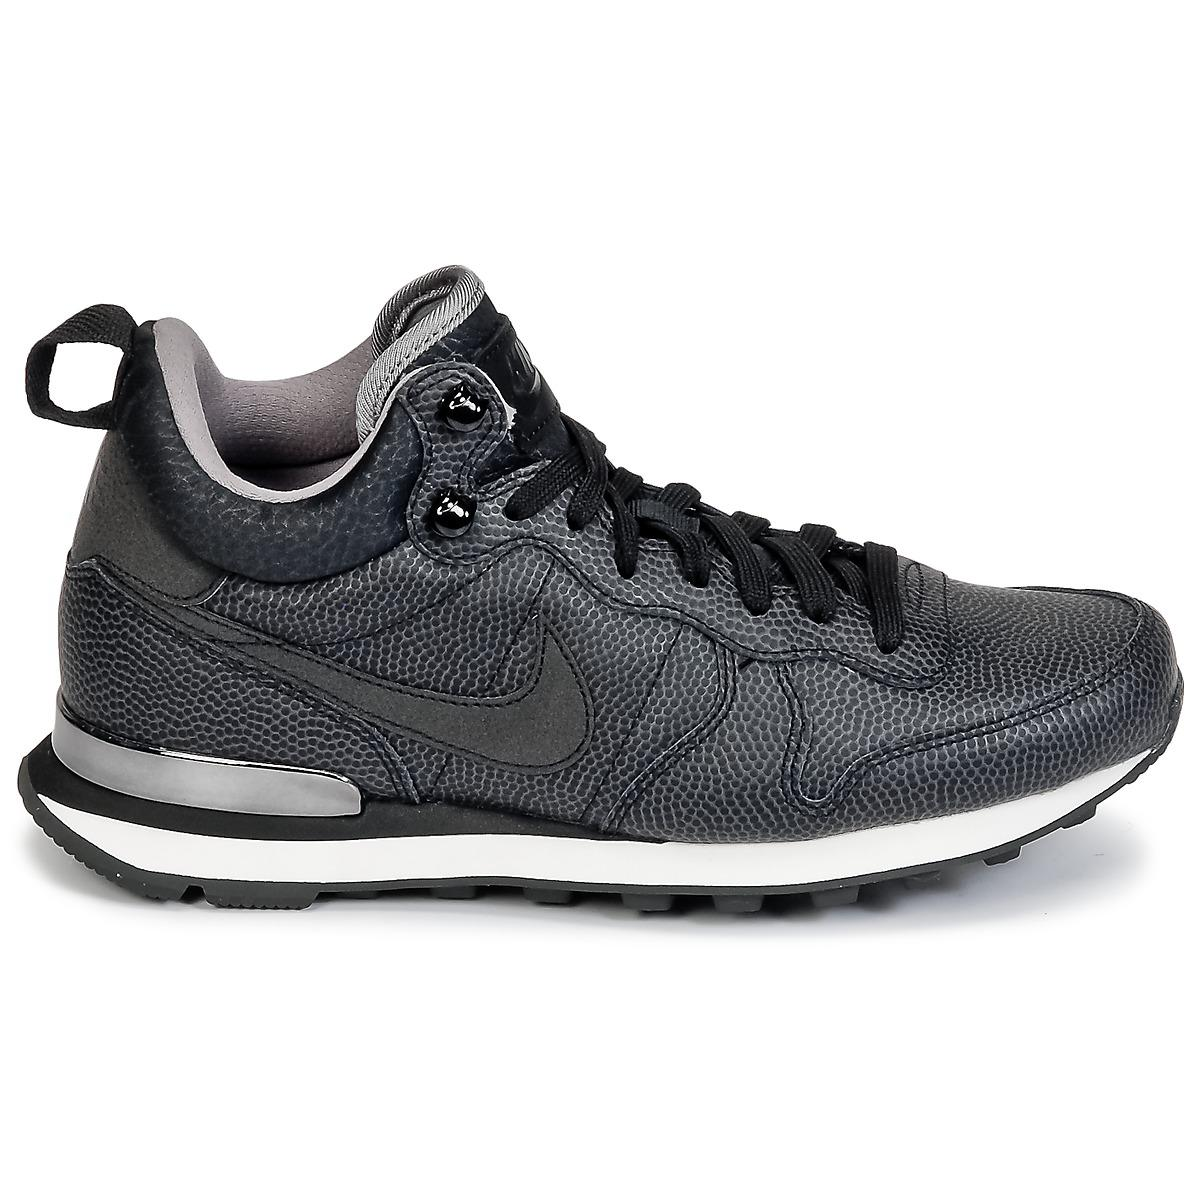 Nike Internationalist Mid Leather W Women's Shoes (high-top Trainers) In Black